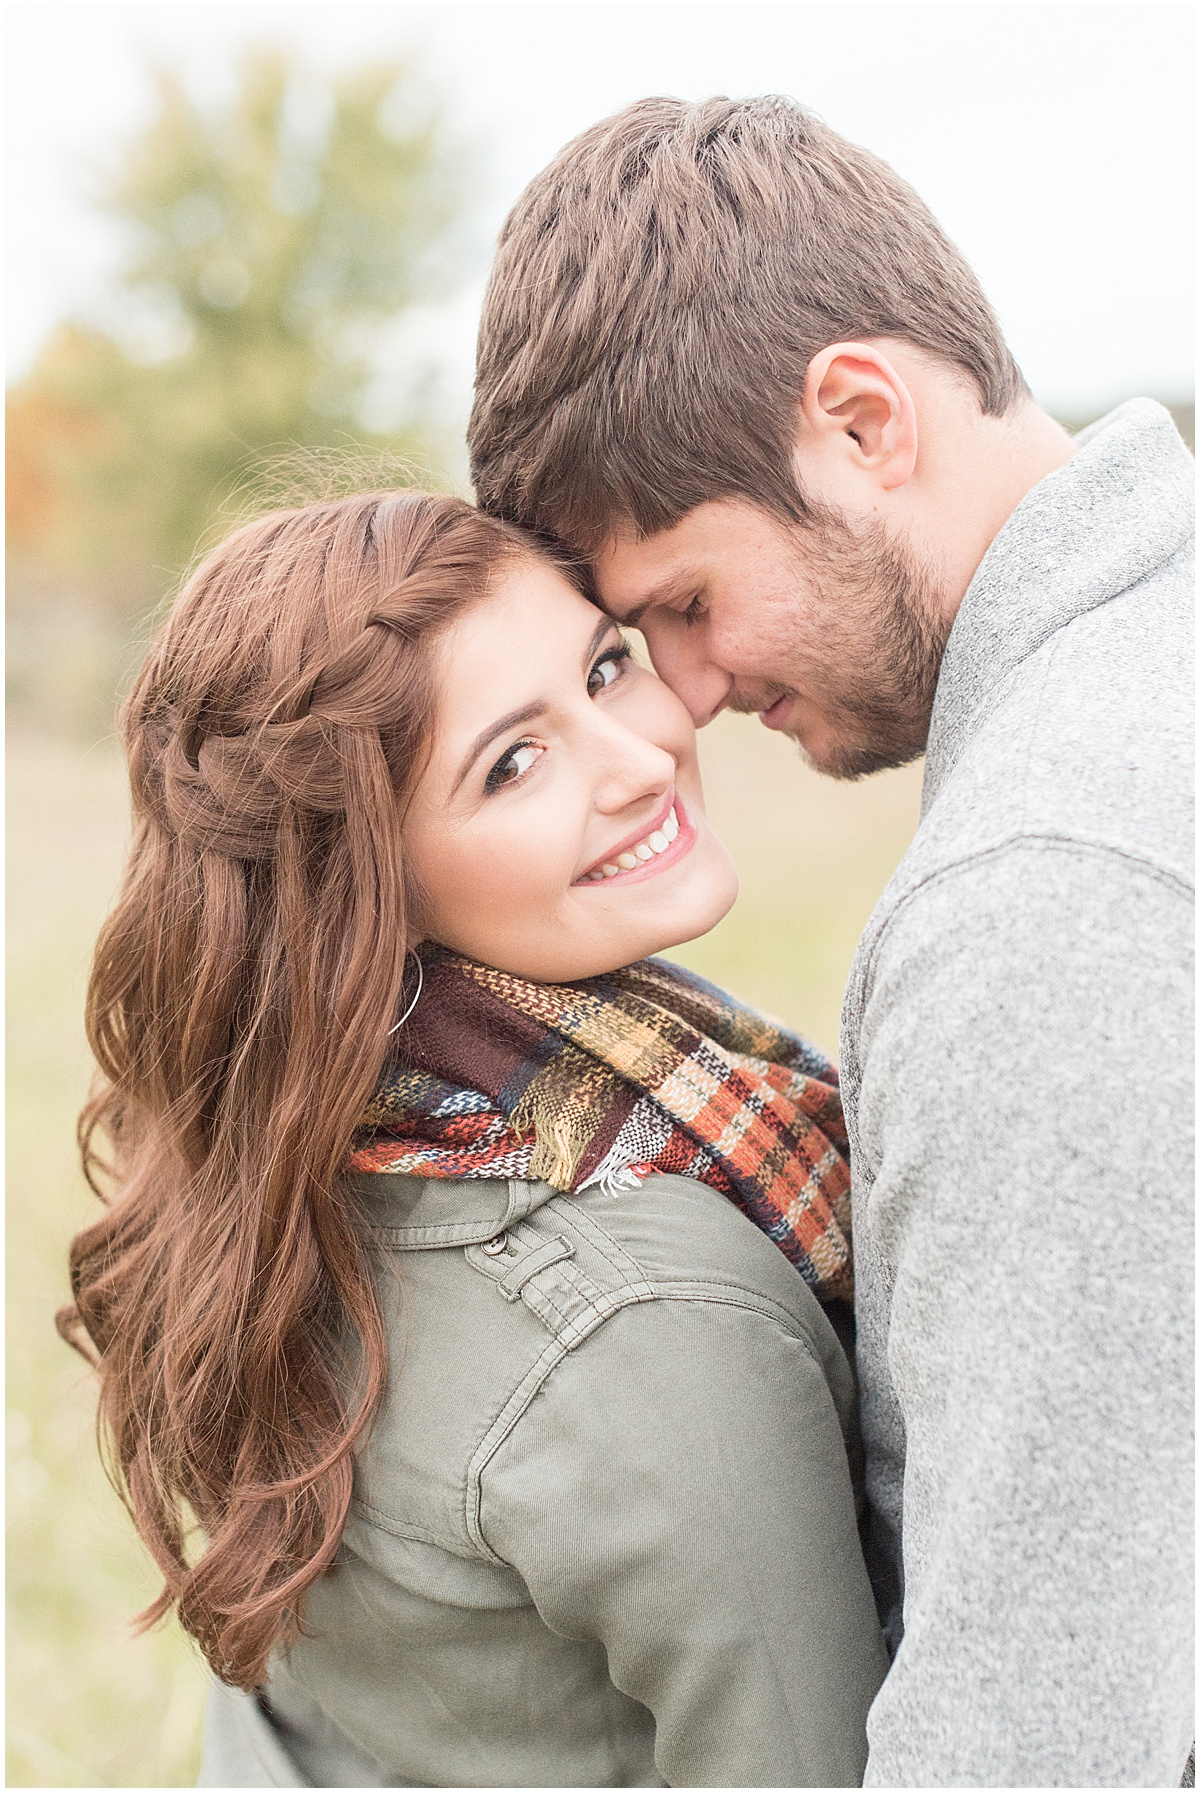 Logan Dexter and Becky Biancardi fall engagement photos at Fairfield Lakes Park in Lafayette Indiana 29.jpg